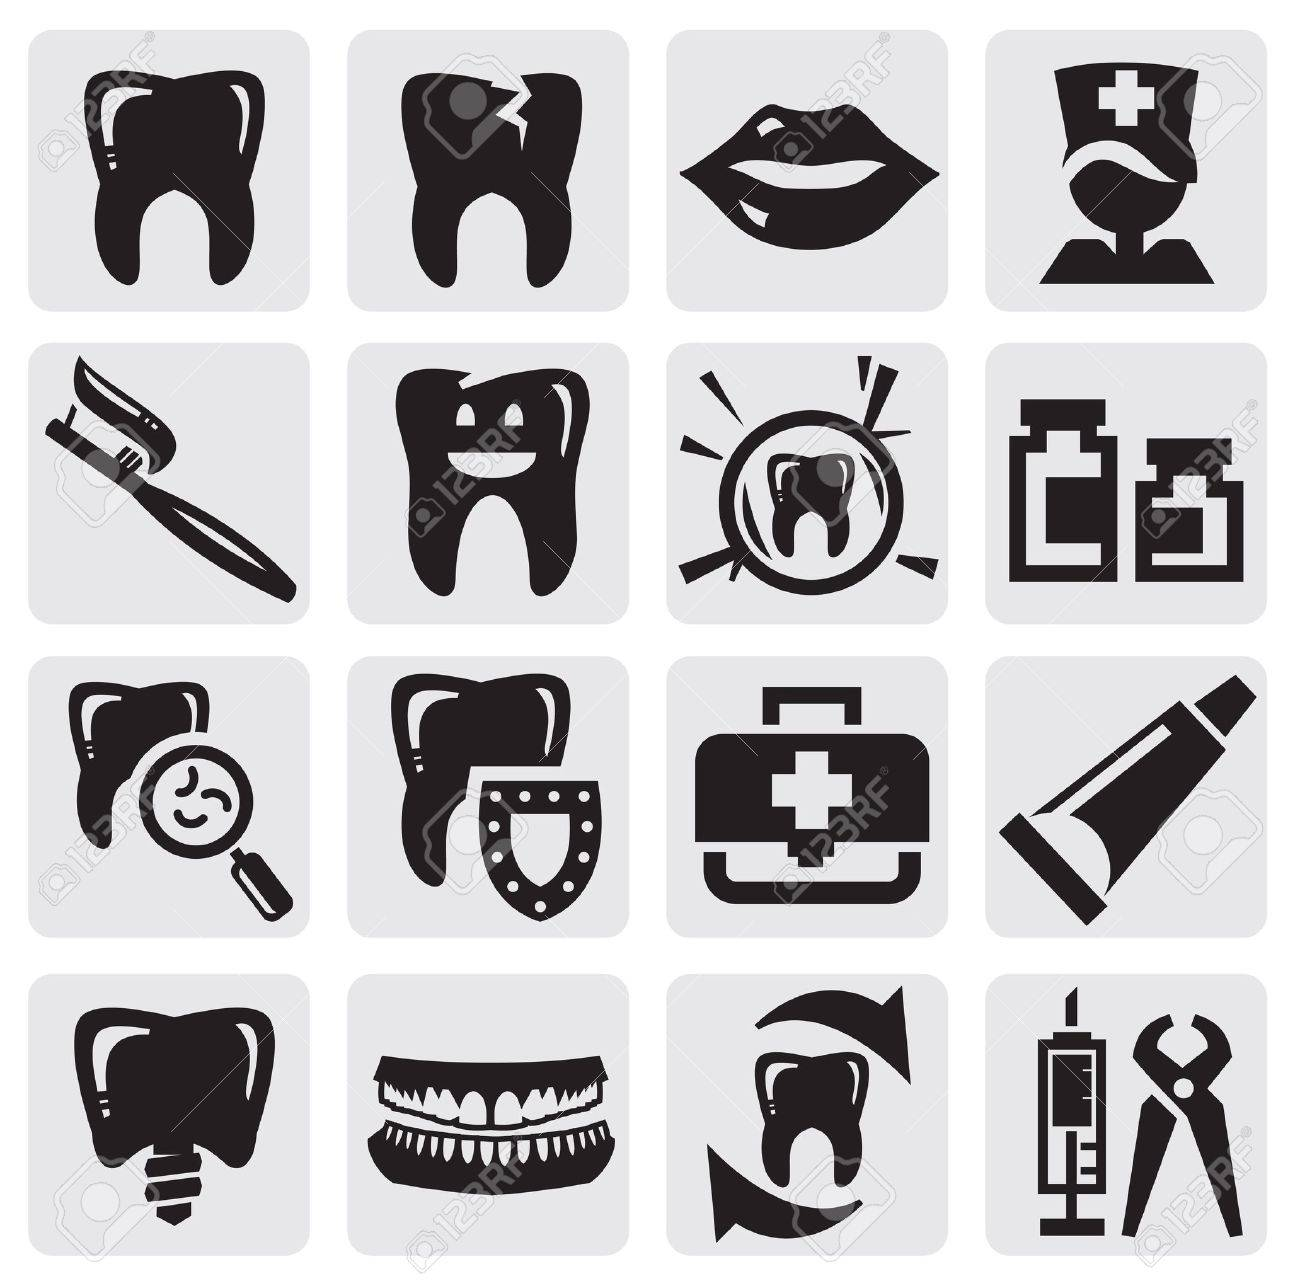 tooth icon Stock Vector - 14979999